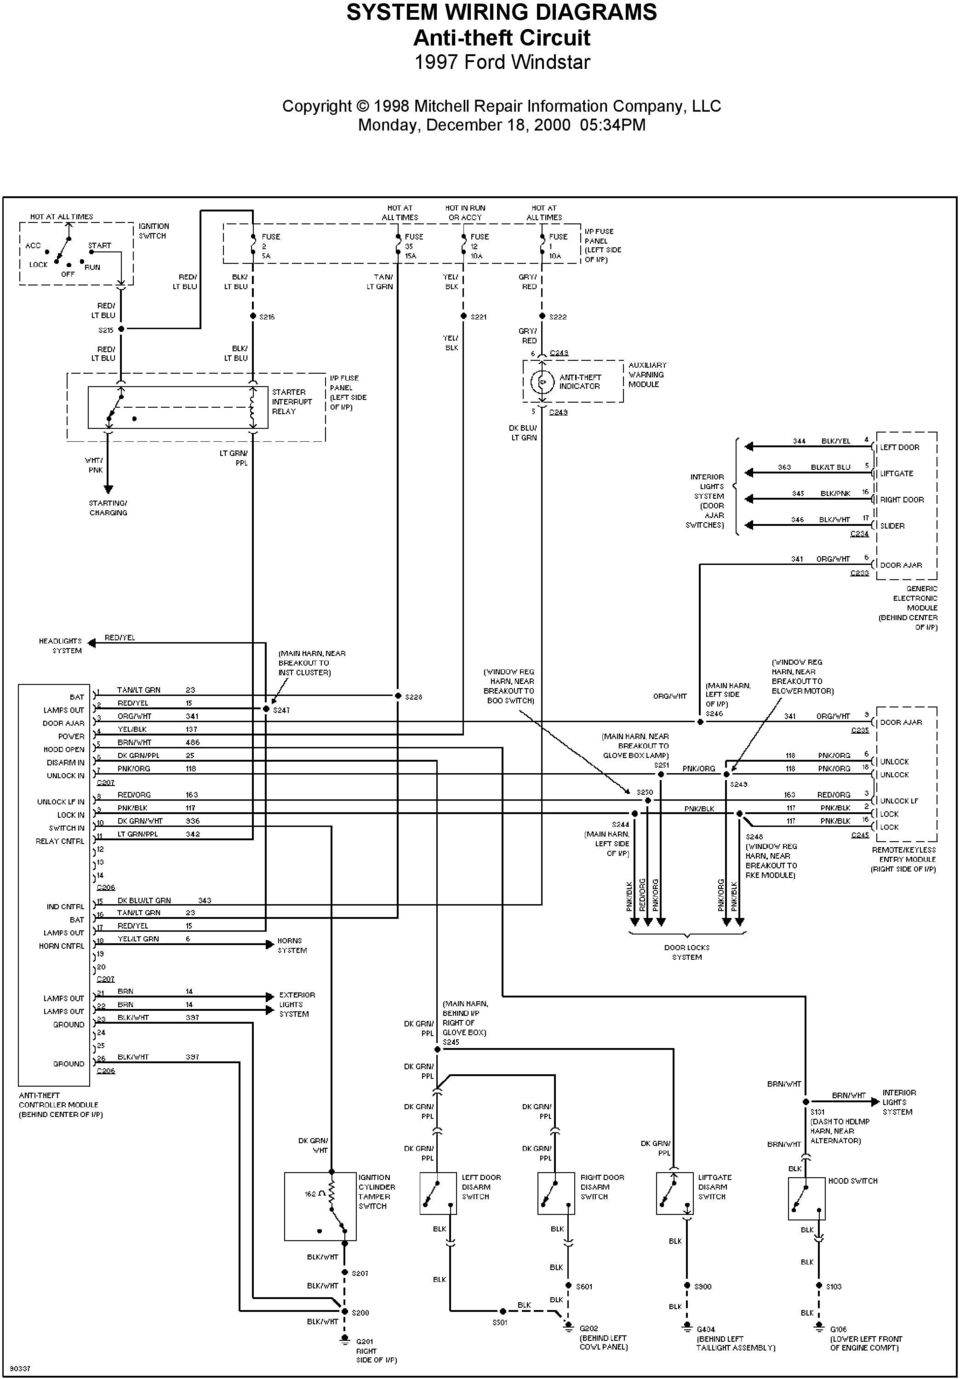 System Wiring Diagrams Air Conditioning Circuits 1997 Ford Windstar 2000 Headlight Diagram Monday